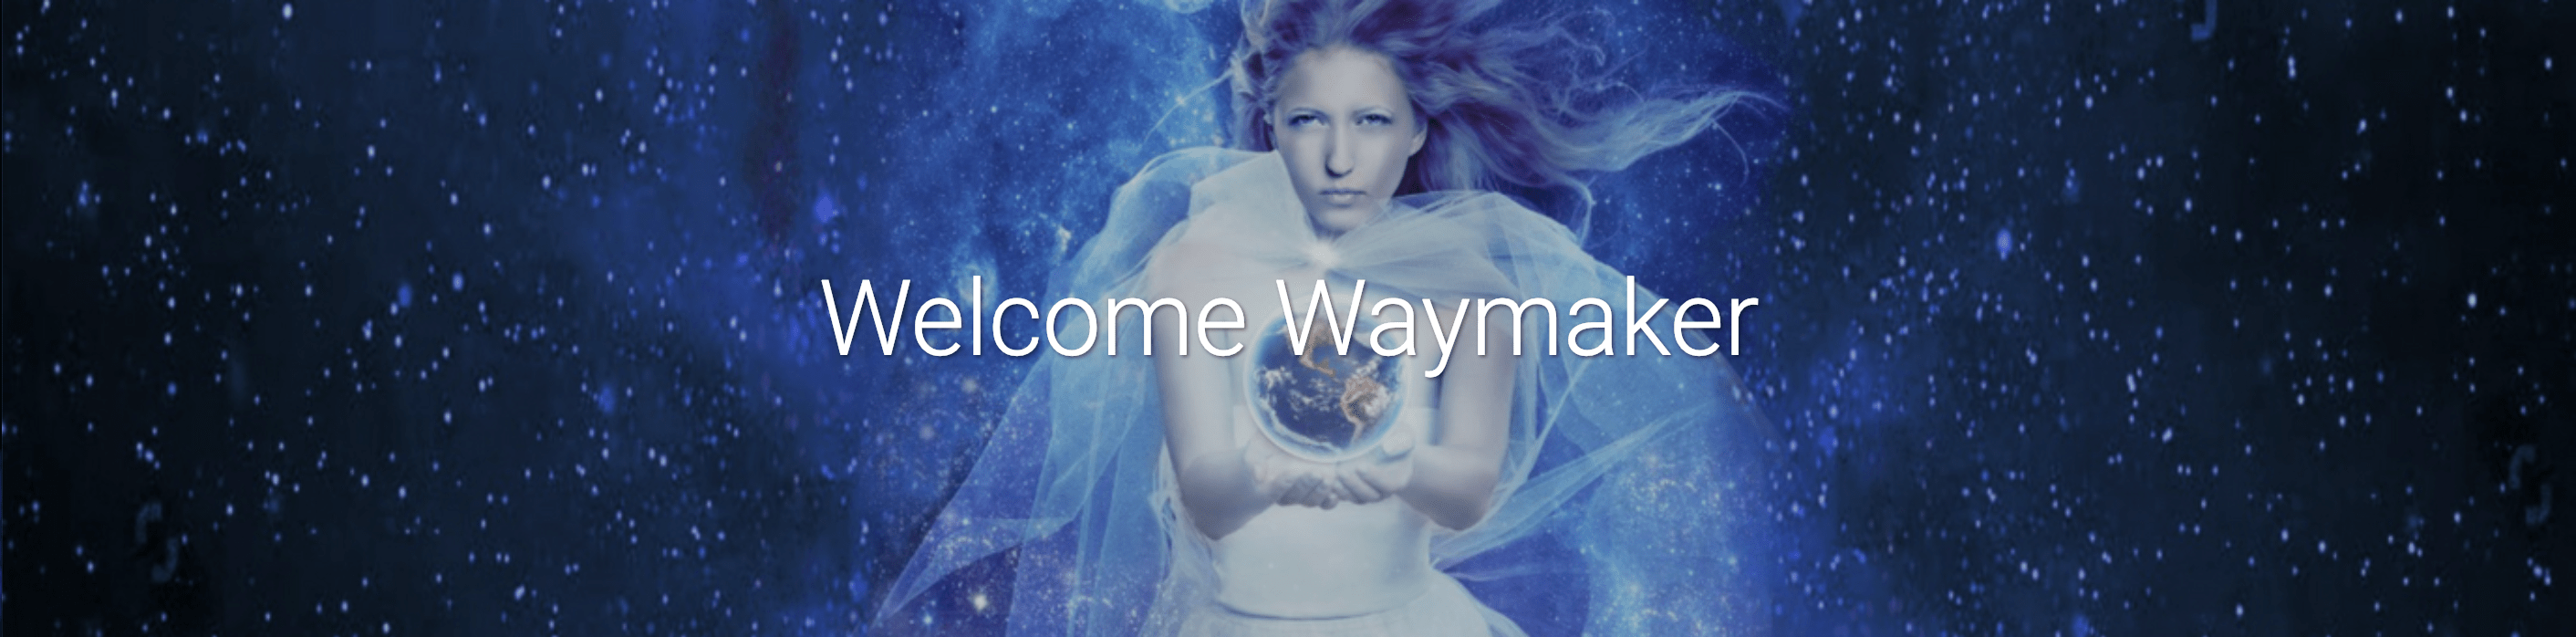 Welcome Waymaker banner for Glenn Younger's courses, meditations, and Divine Soul transformational coaching.